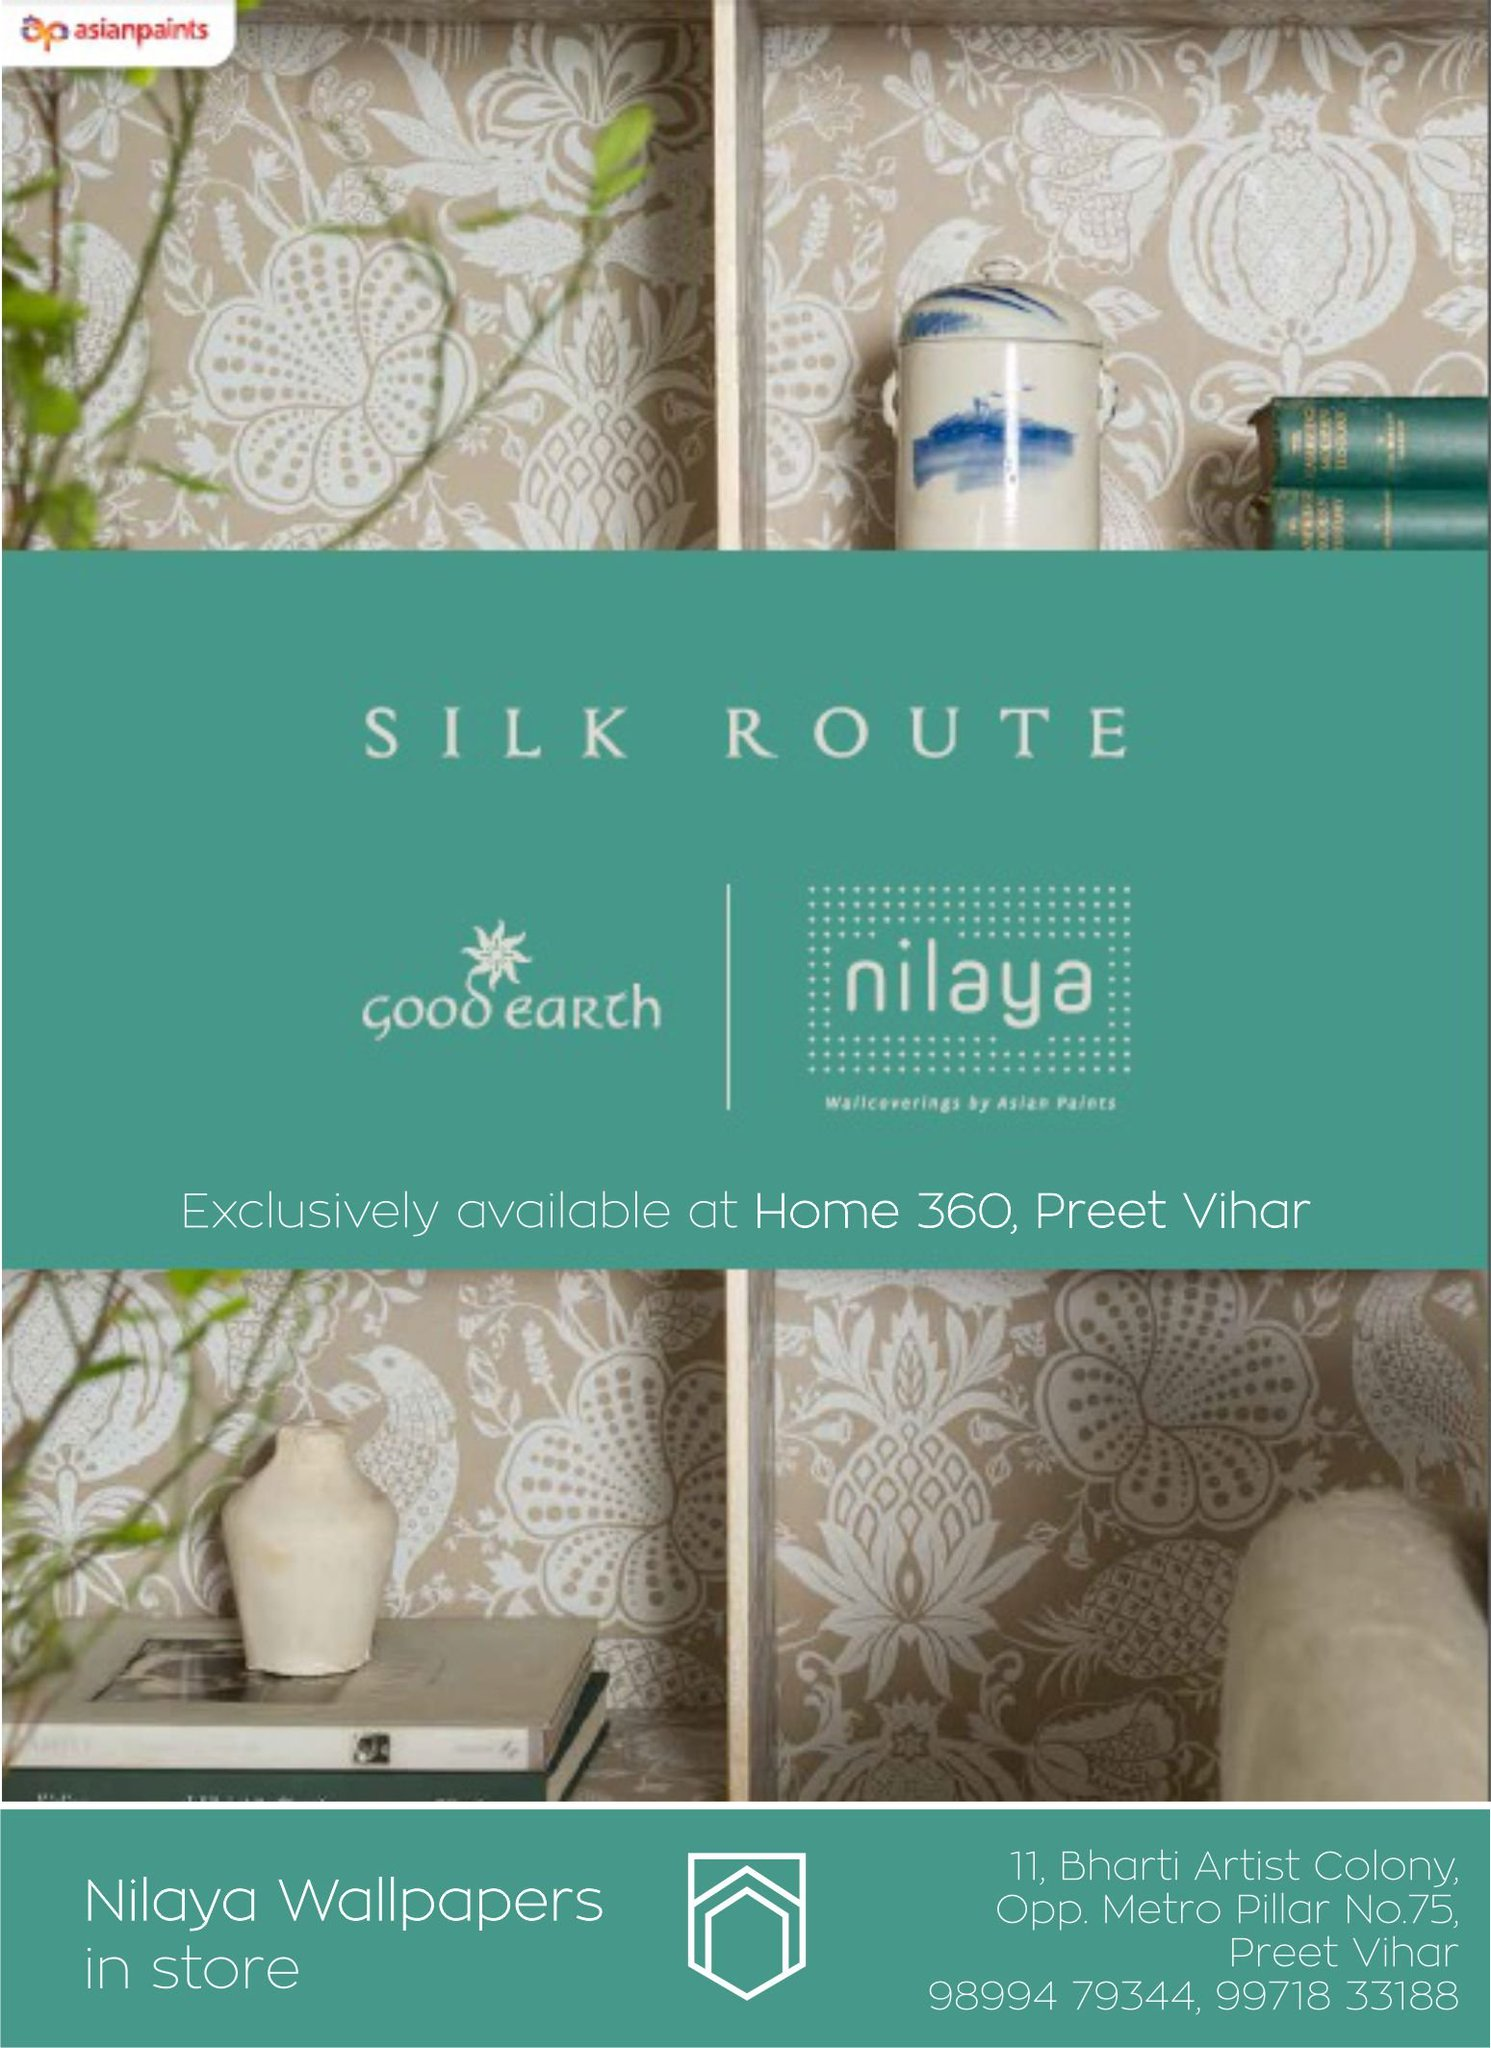 Home 360 Ar Twitter Introducing Nilaya Wallpapers Exclusively At Home 360 Preet Vihar Explore Latest Range Of Designer Wallpapers From Good Earth Sabyasachi By Nilaya Select From A Variety Of Nature